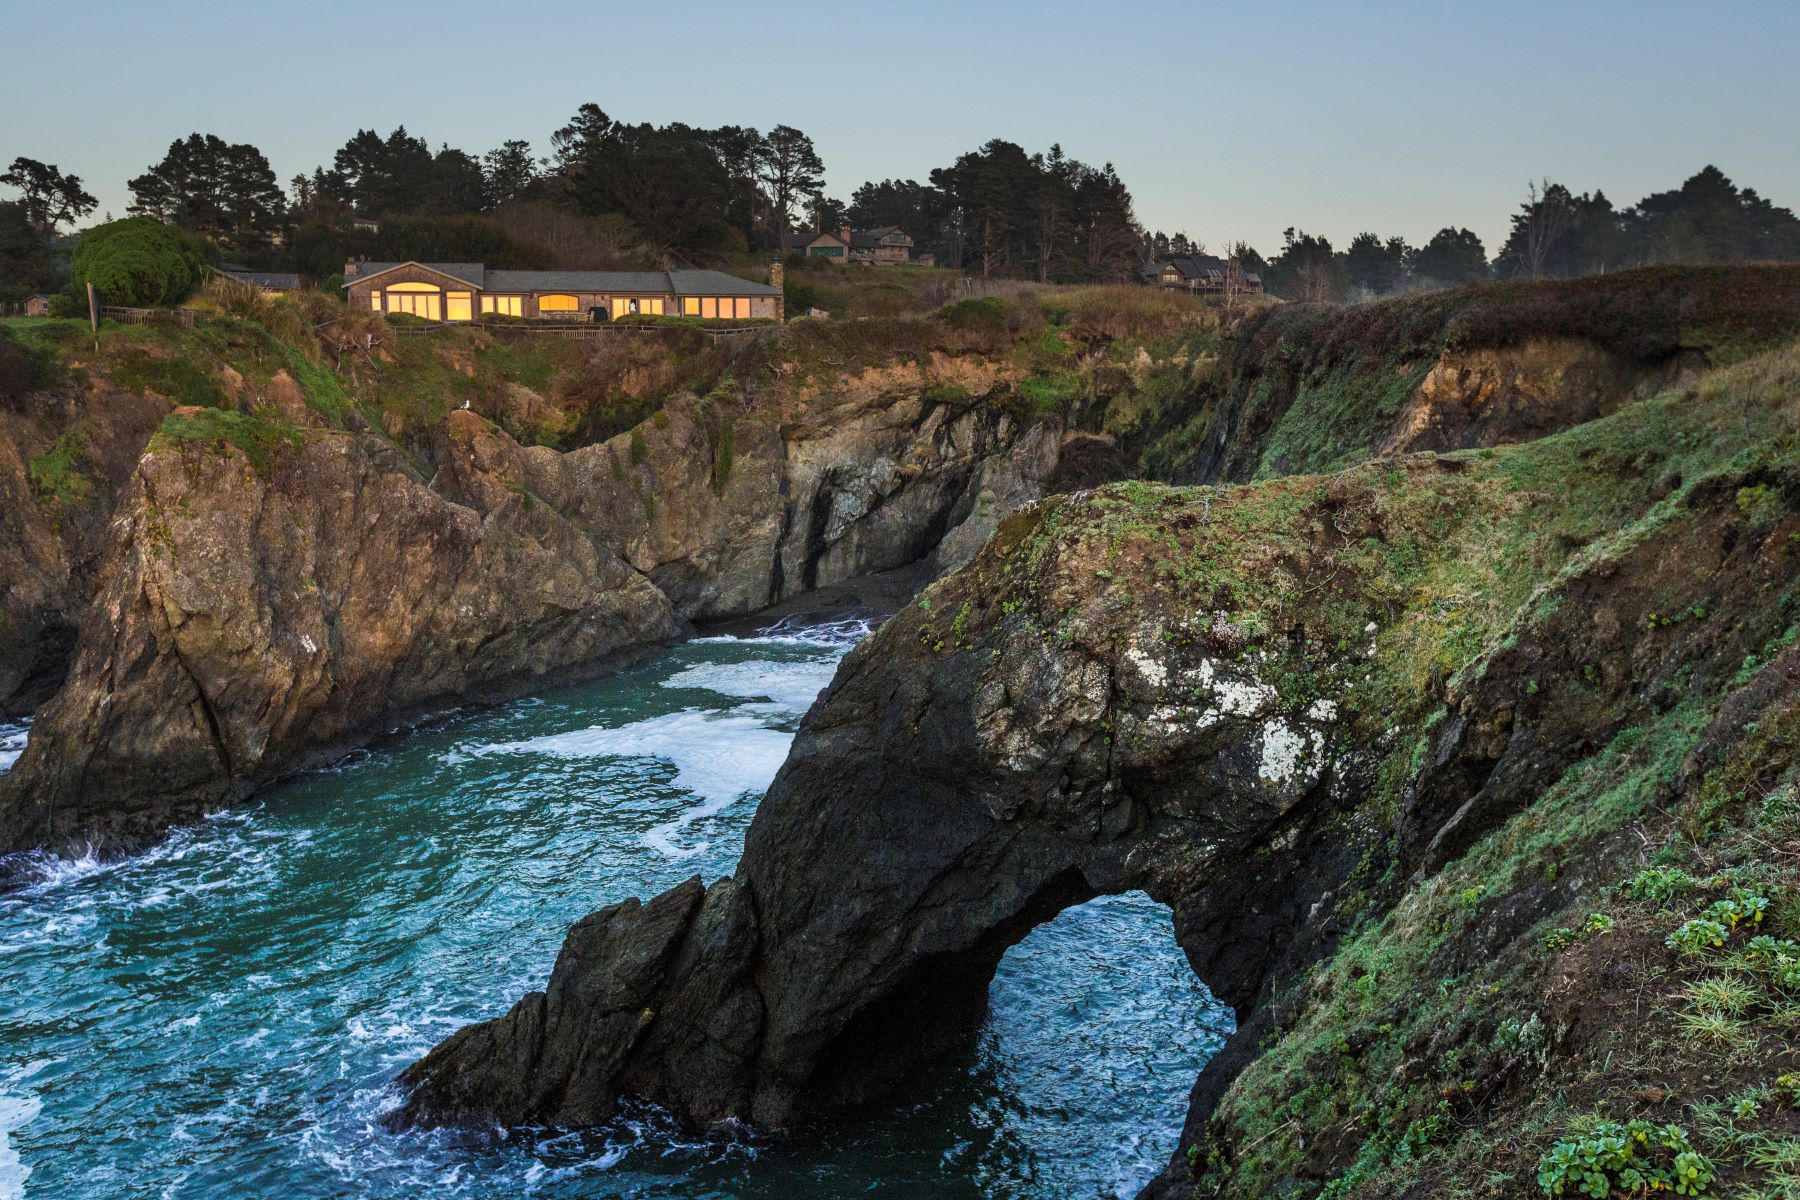 Casa Unifamiliar por un Venta en Sunset Cove 45275 Mar Vista Drive Mendocino, California 95460 Estados Unidos